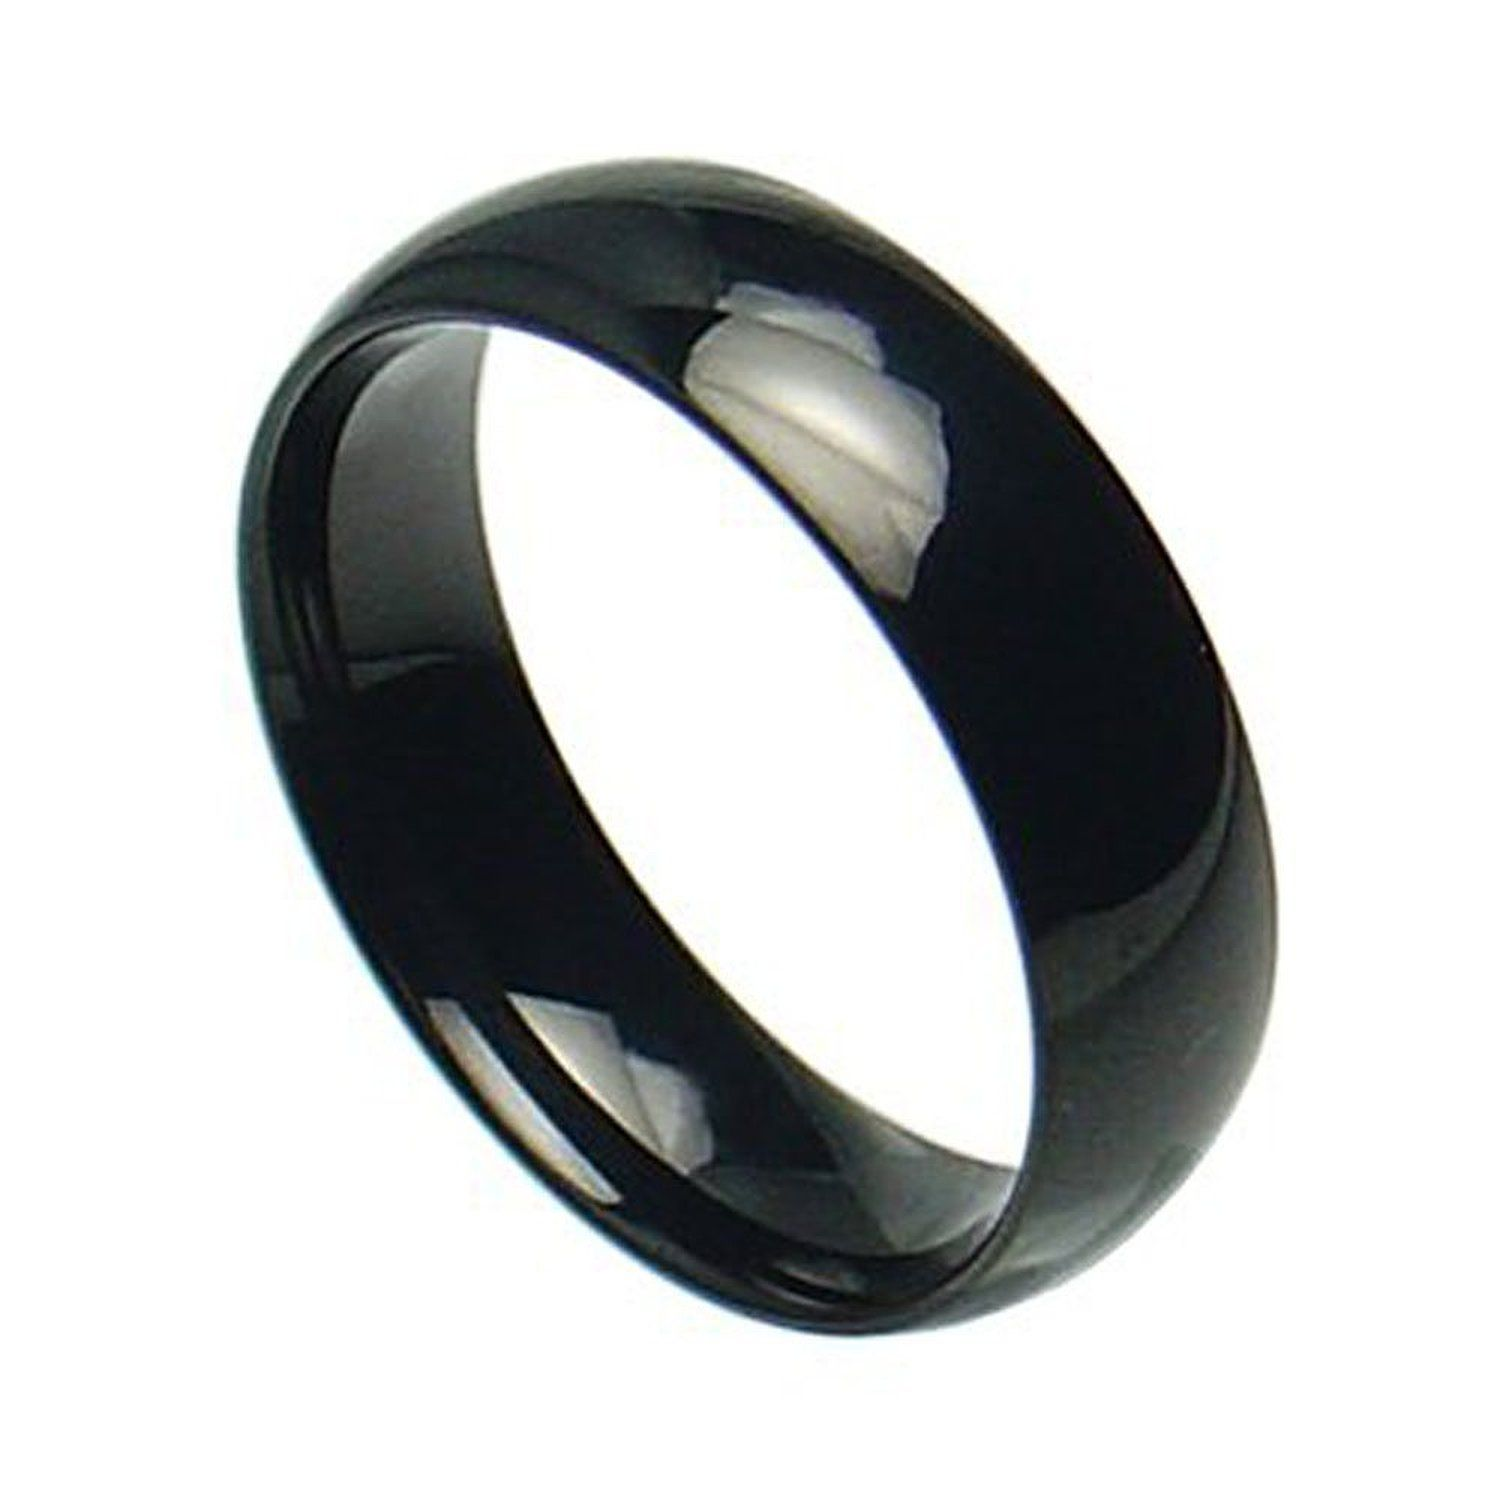 c7b91d7275b86 Stainless Steel Shiny Polished Black Plain Band Ring | Women's ...